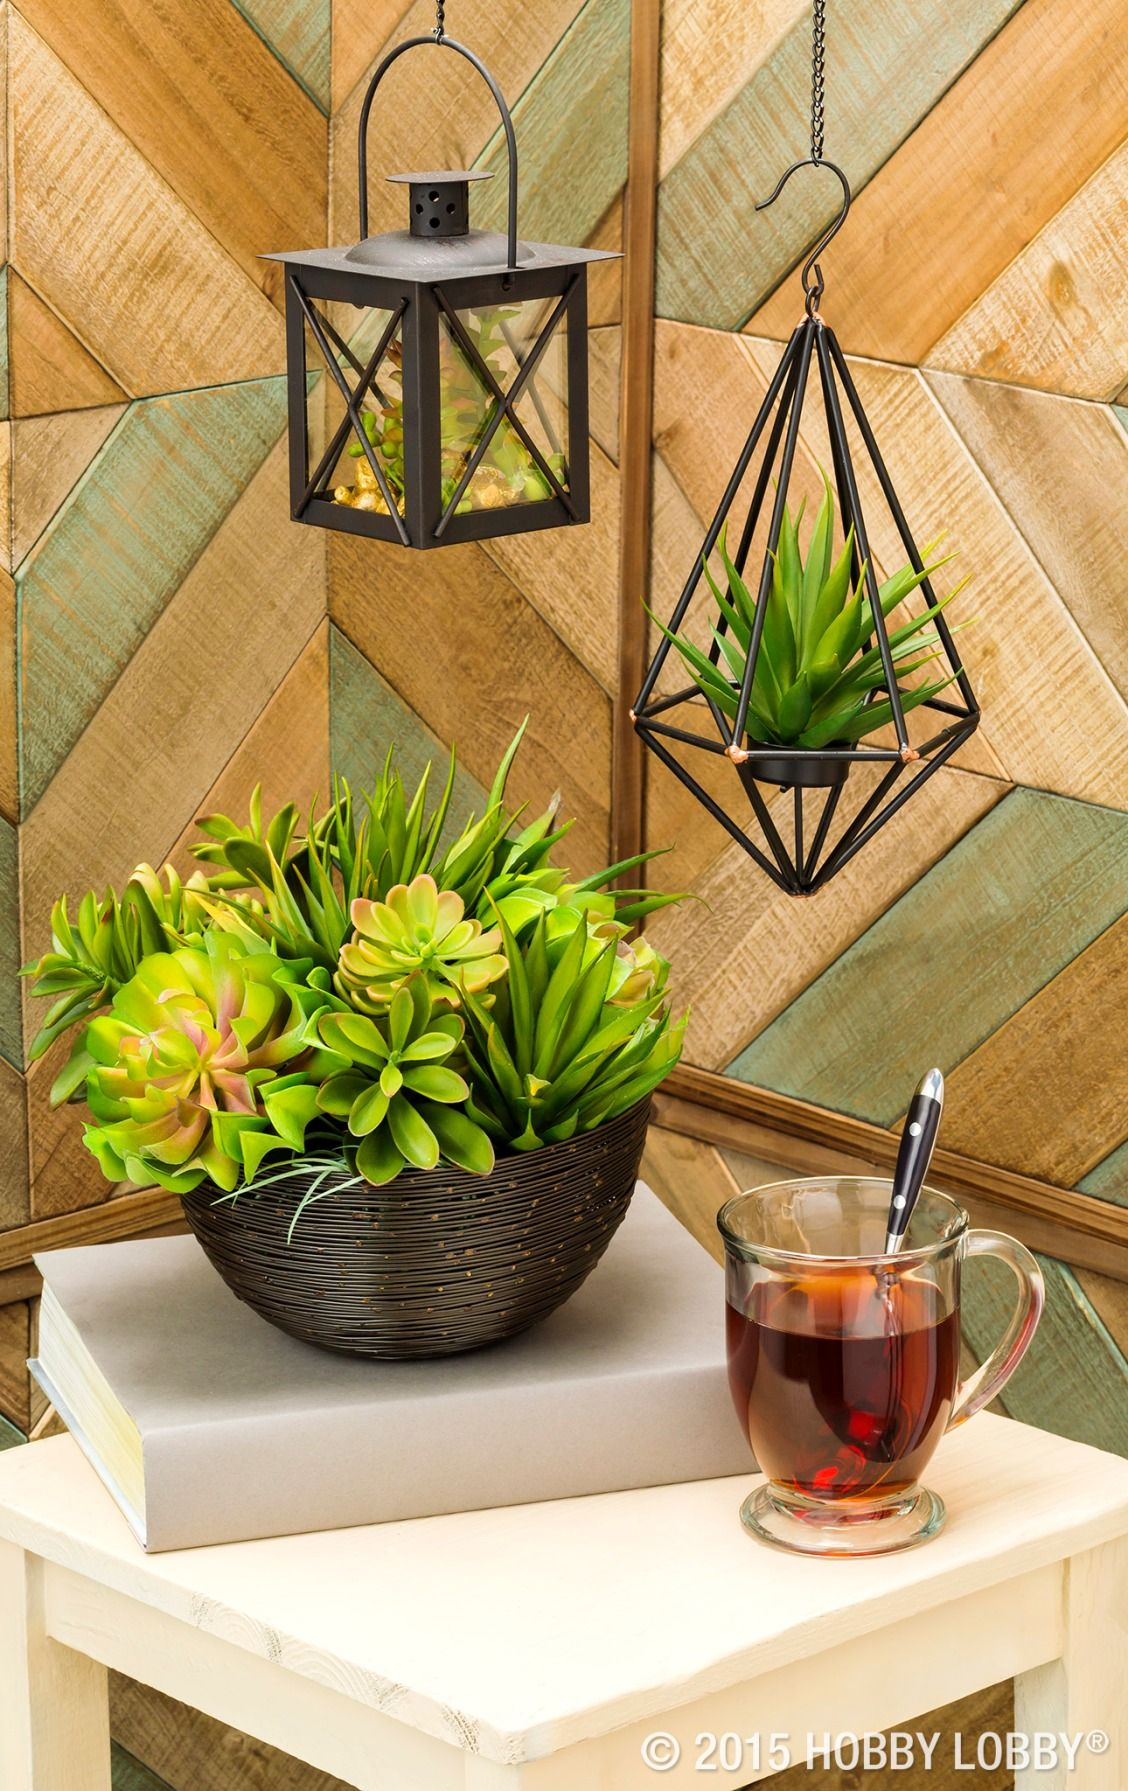 Hobby lobby garden decor  Obtain sophisticated style with faux succulents and chic terrariums